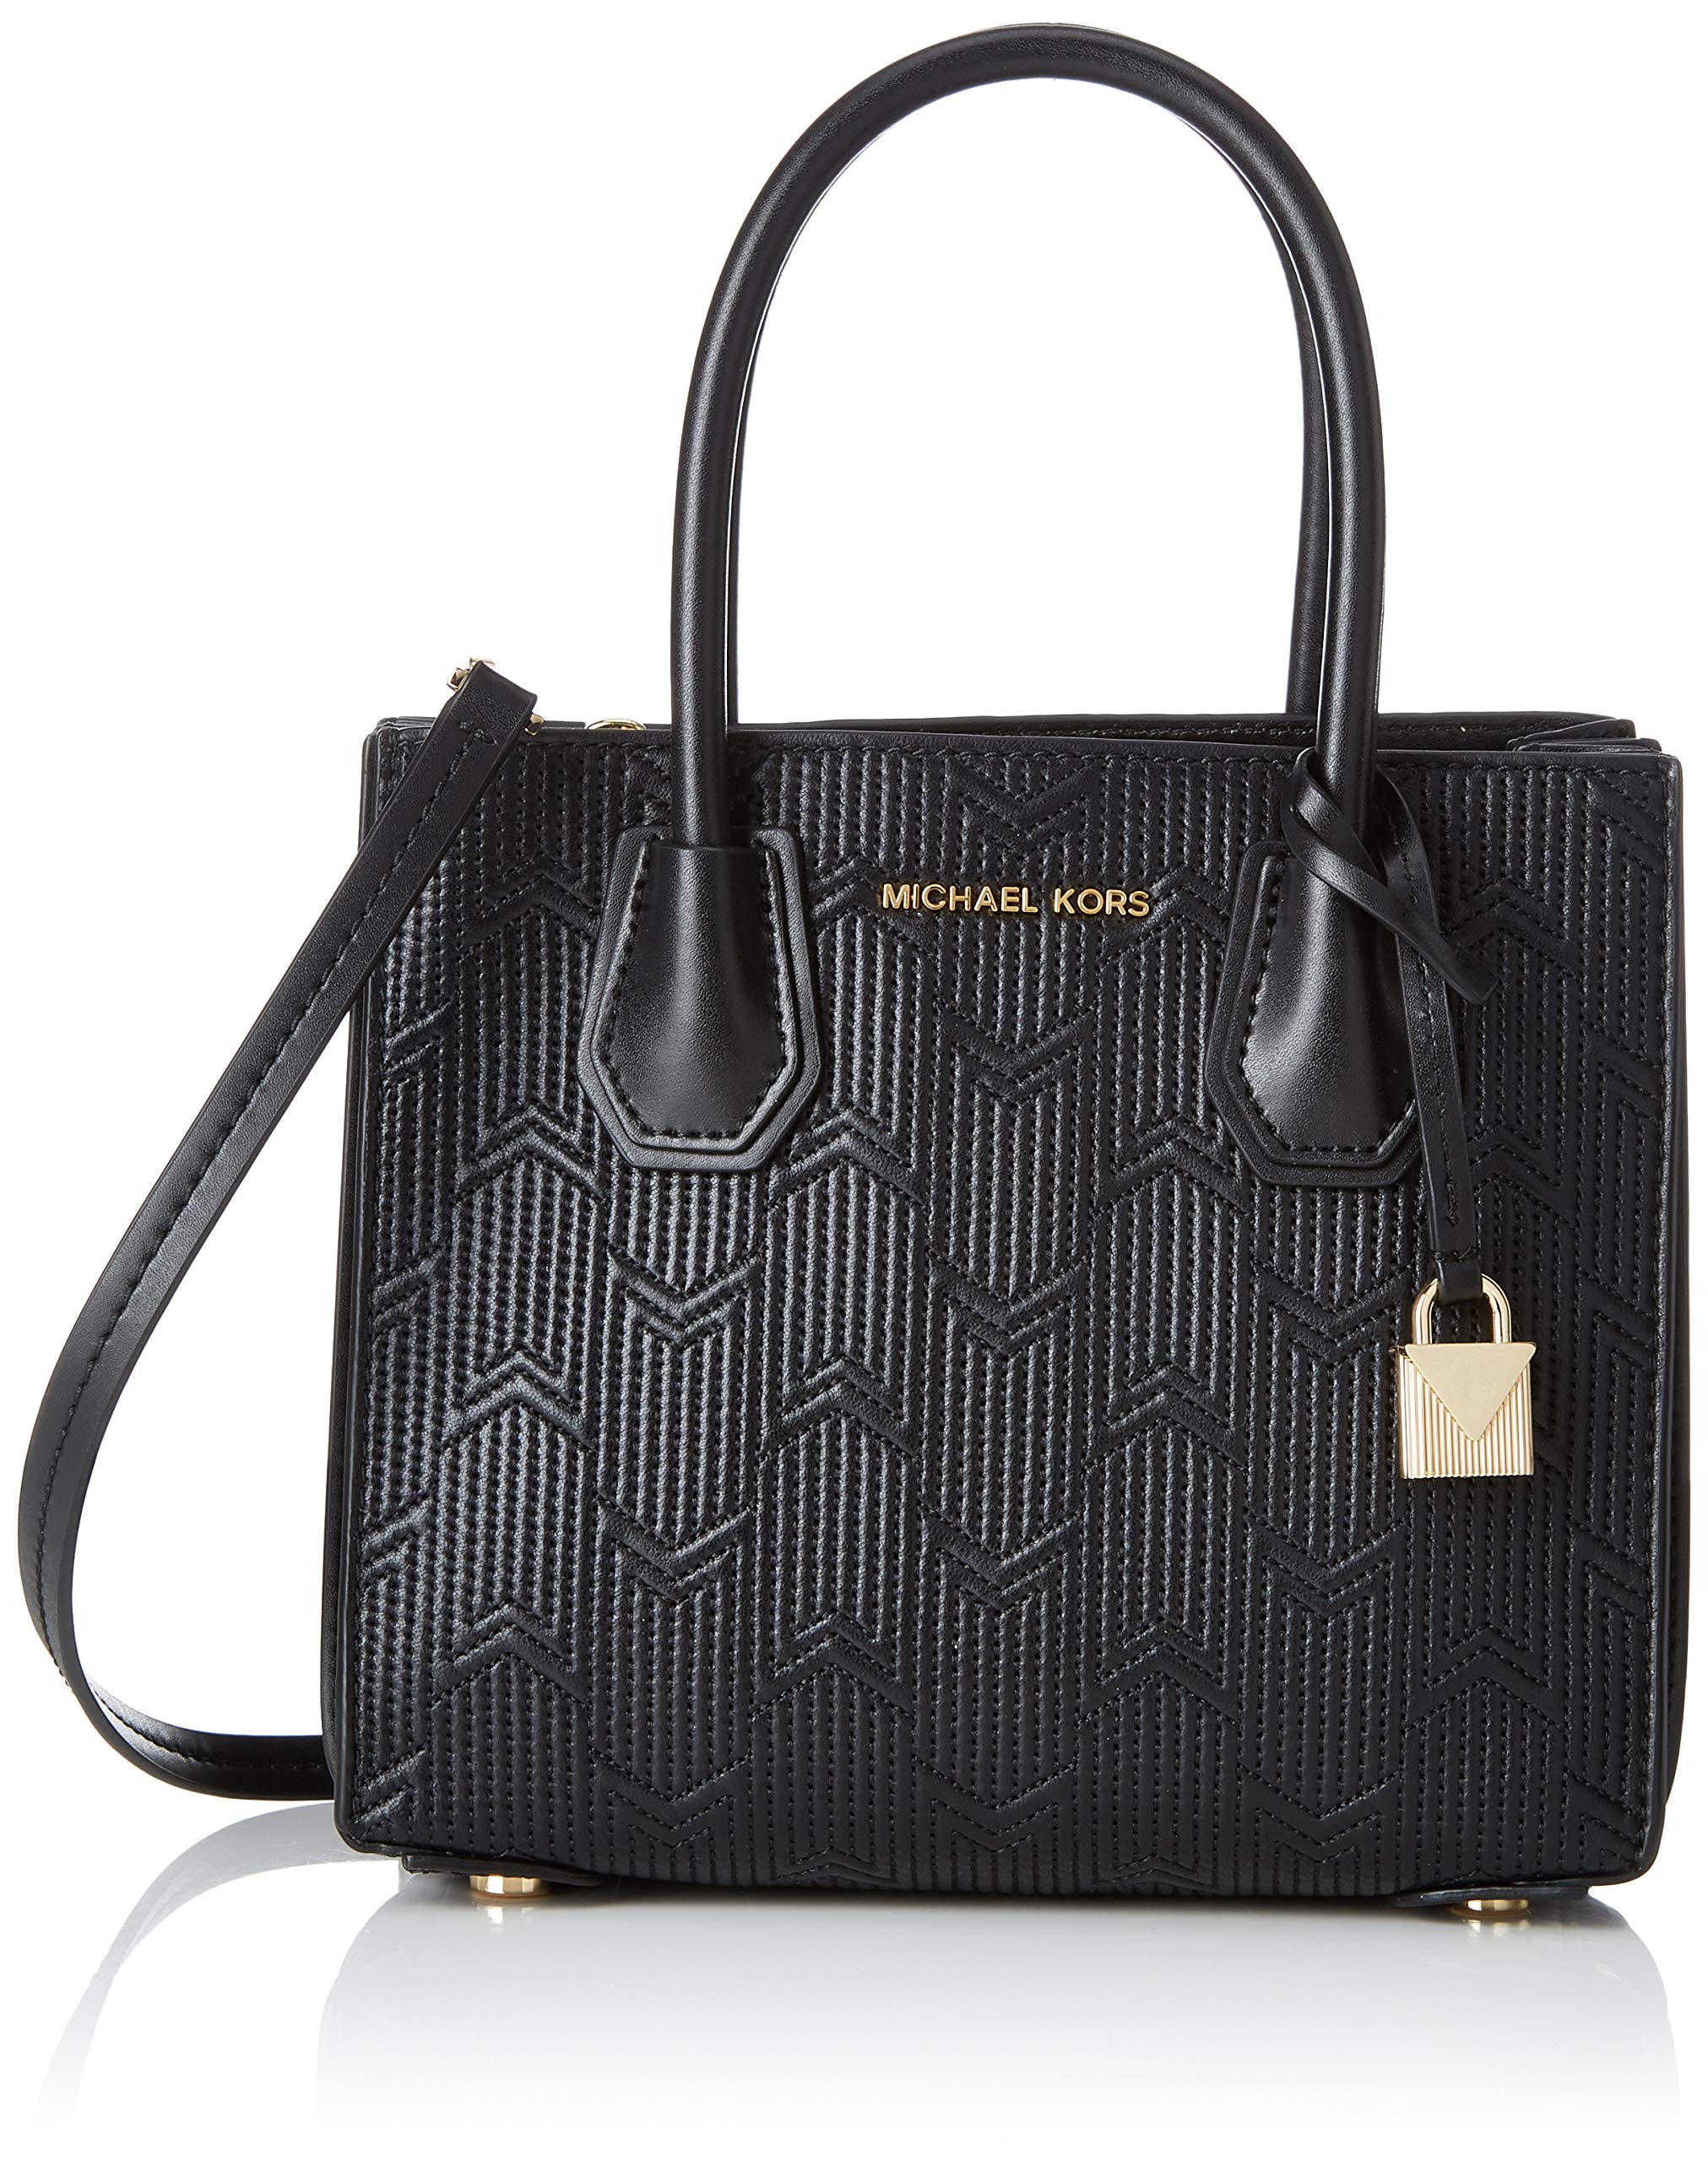 Cmb 6 Michael Kors X H Mercer MessengerBesace T 2x19x21 FemmeNoirblack10 Medium Acordion ul1Tc3JFK